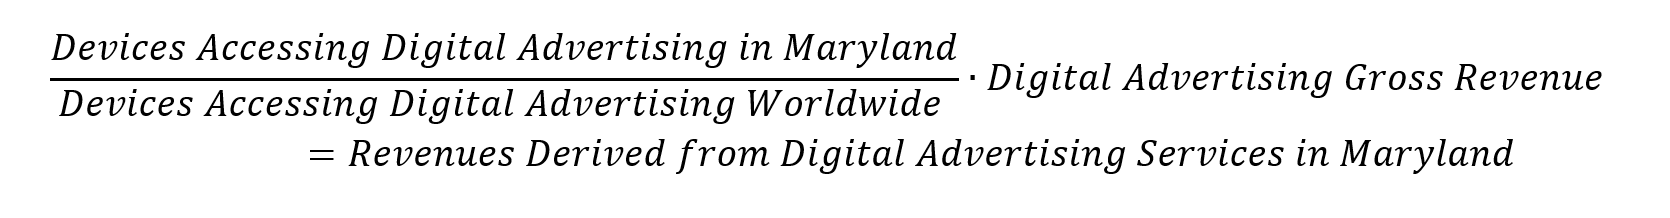 Learn more about the 2021 Maryland digital advertising tax regulations, revenue derived from digital advertising services in Maryland